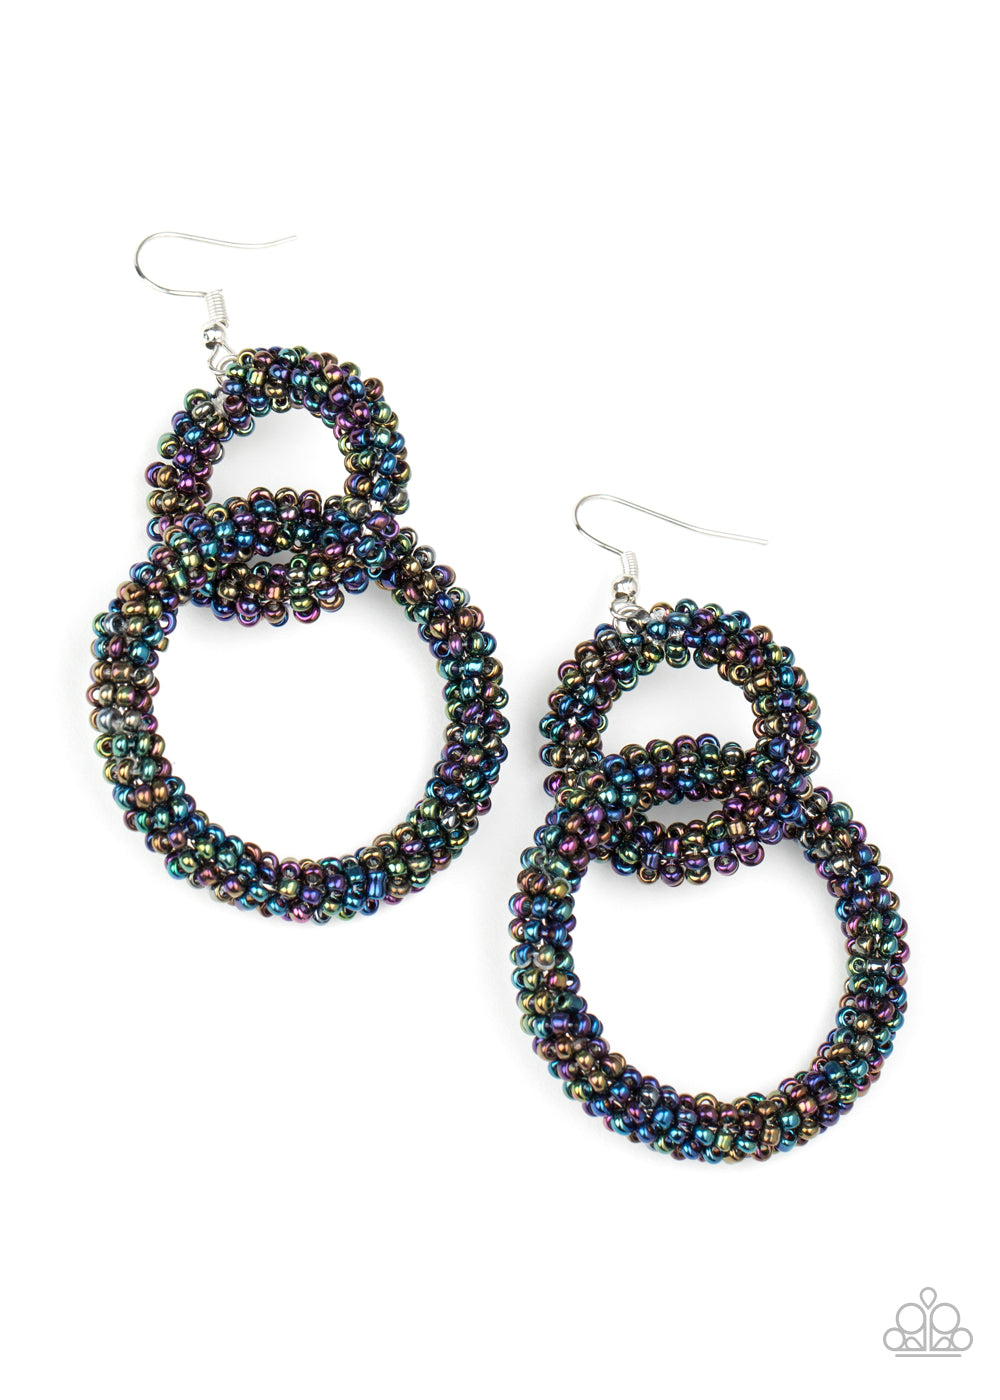 five-dollar-jewelry-luck-bead-a-lady-multi-earrings-paparazzi-accessories